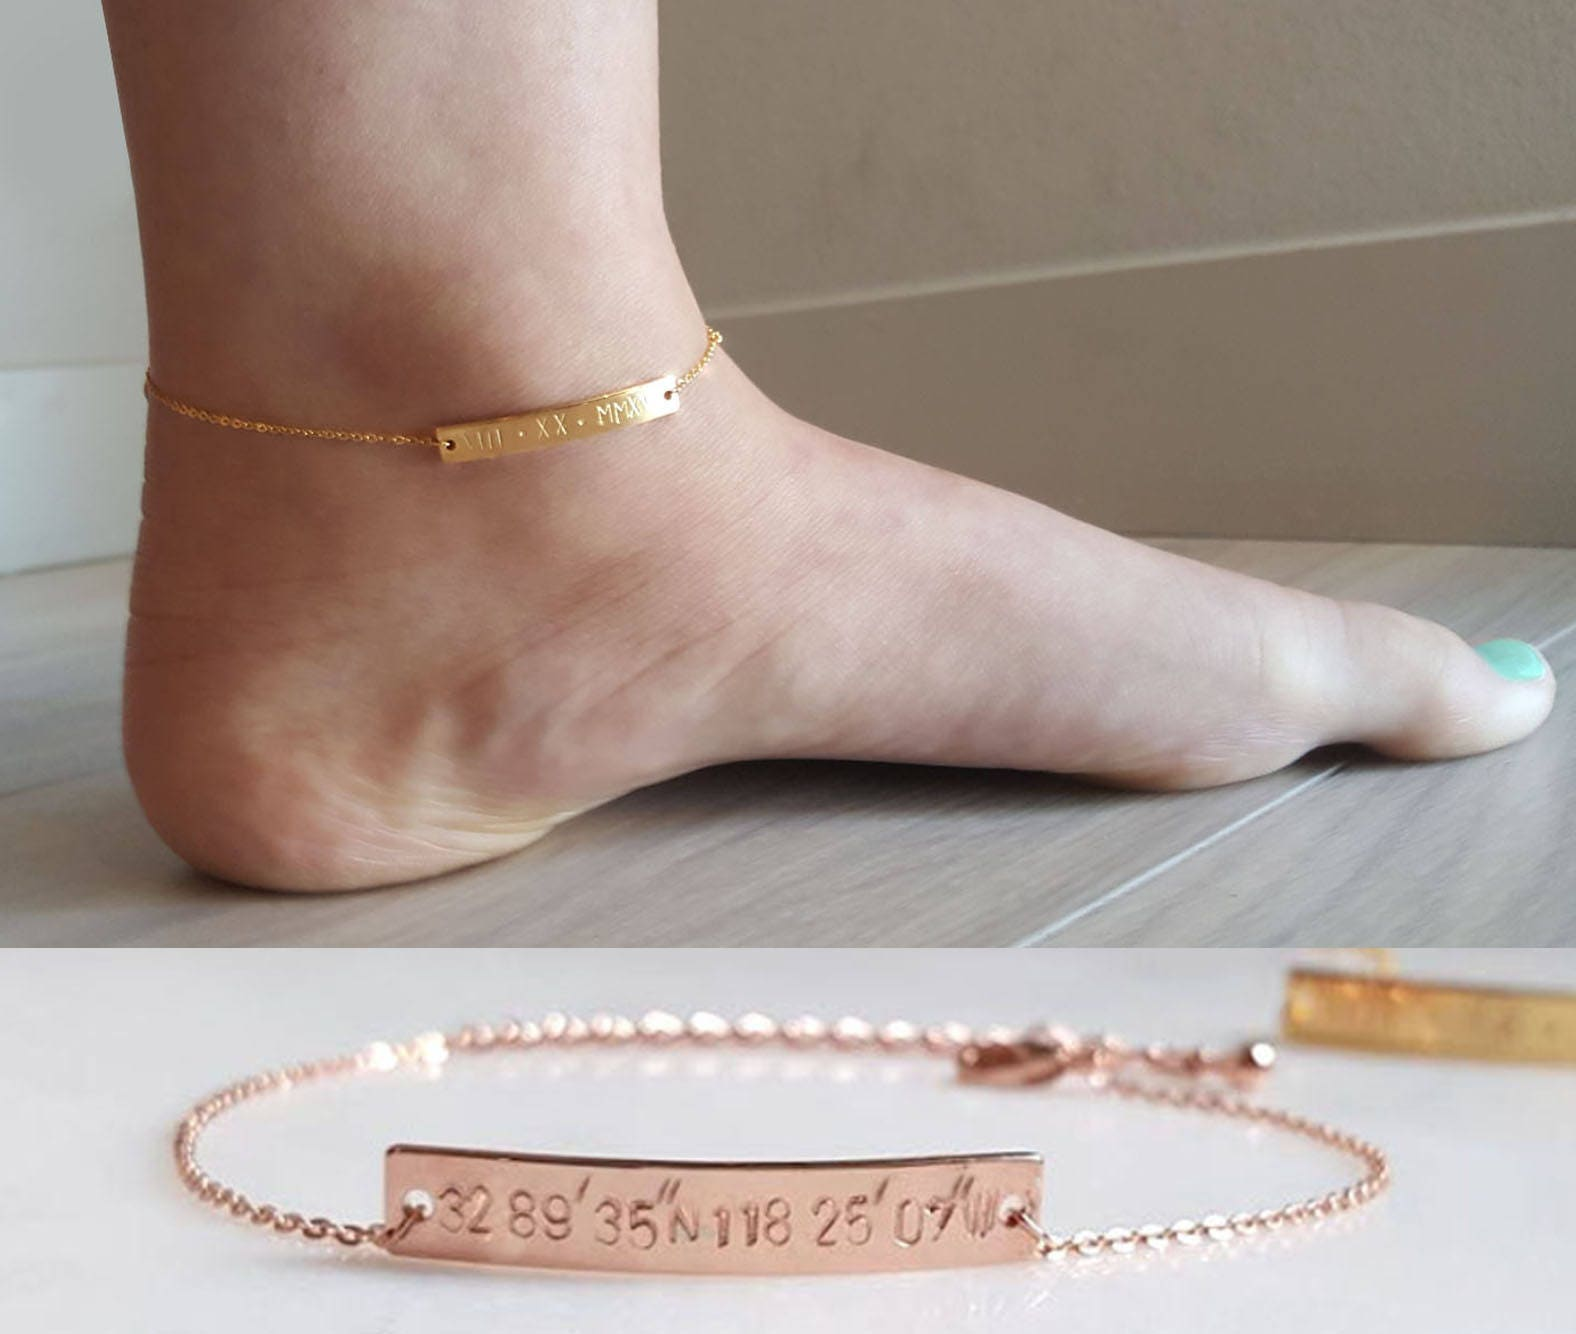 charm anklet productimg ankle finejwlry gold font products snglscrptname name script bracelet single